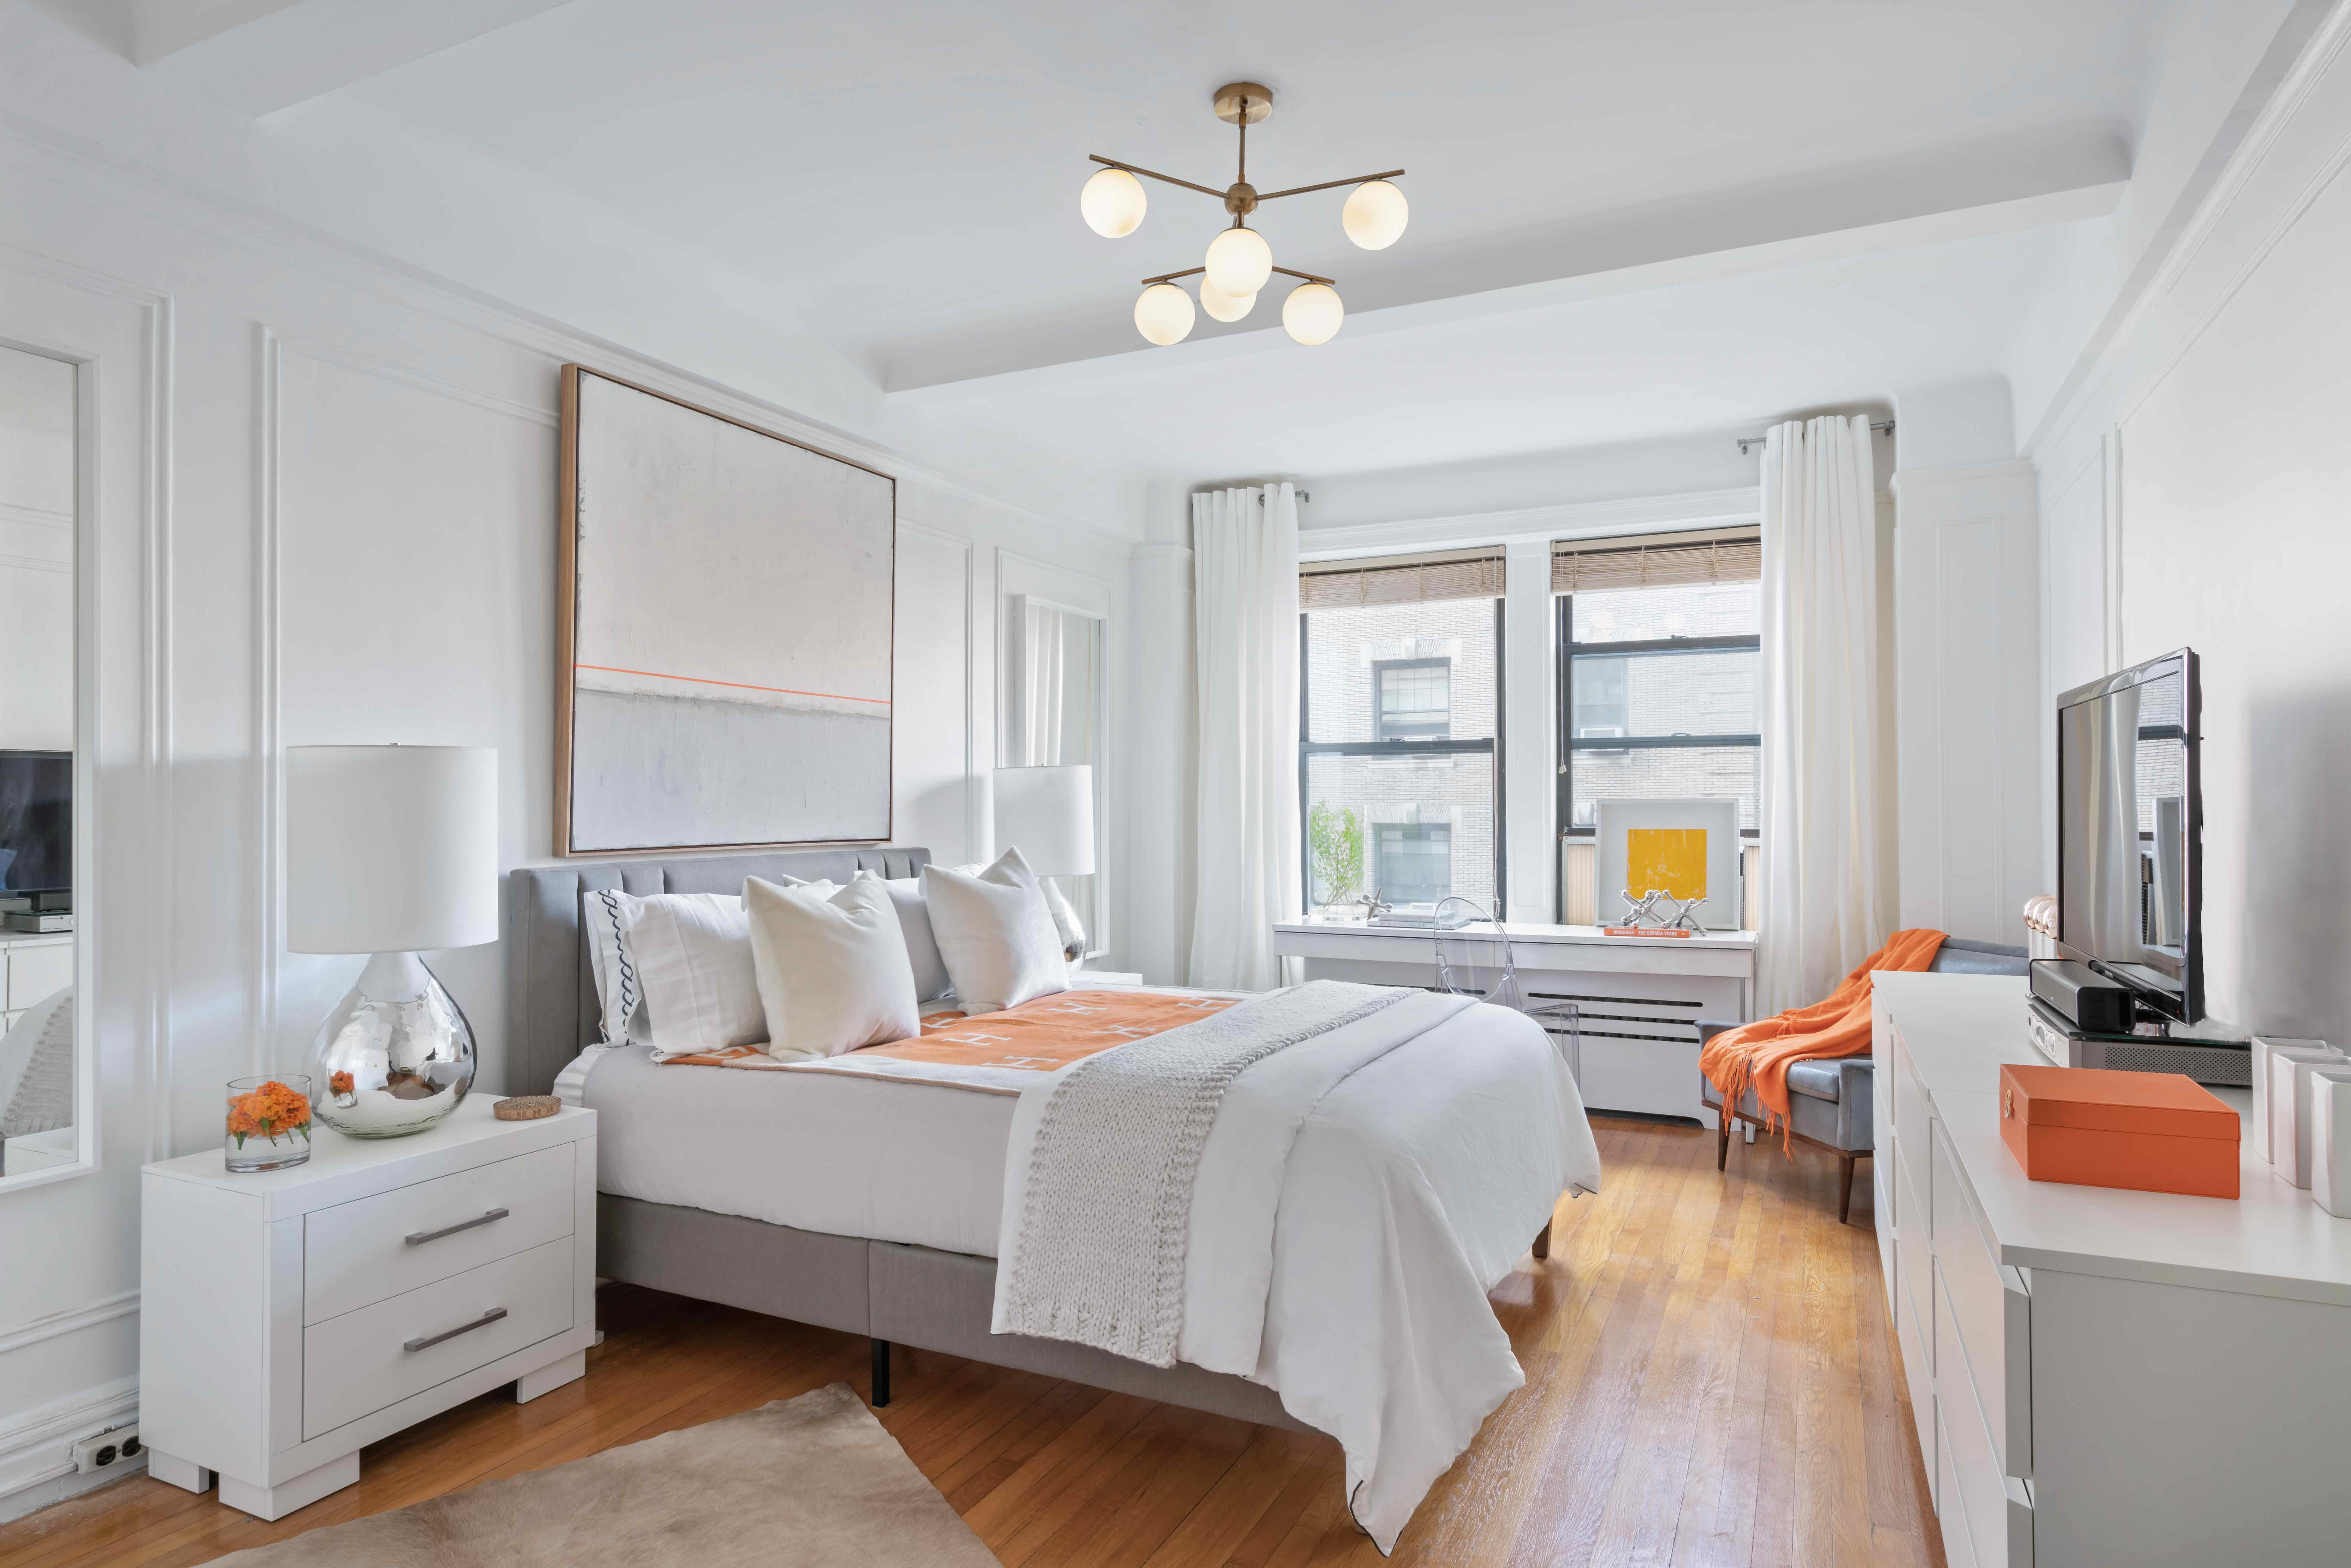 600 West 111th Street Morningside Heights New York NY 10025